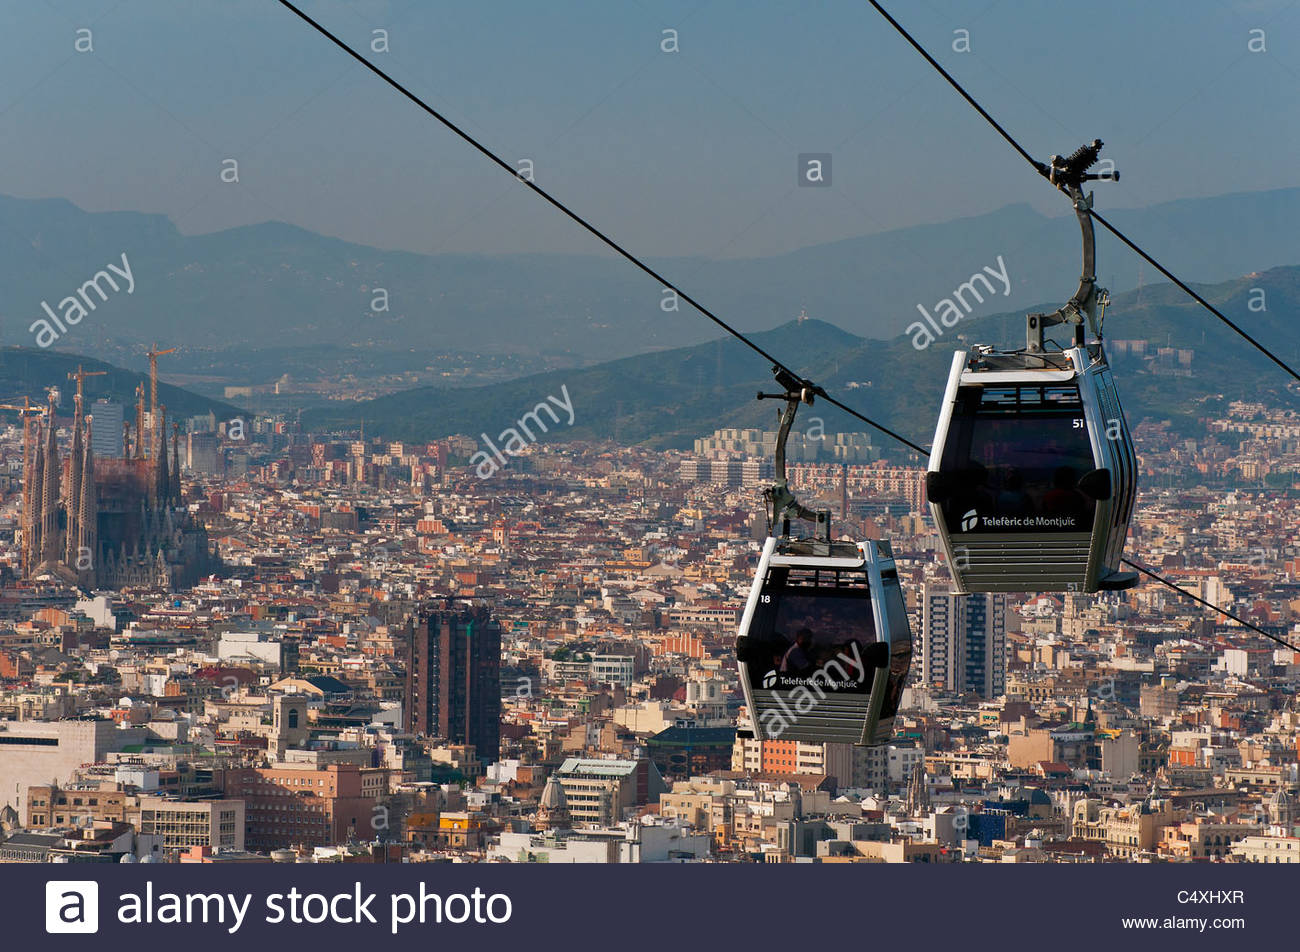 Cable Automotive Oklahoma City : Teleferic de montjuic cable car with city skyline as